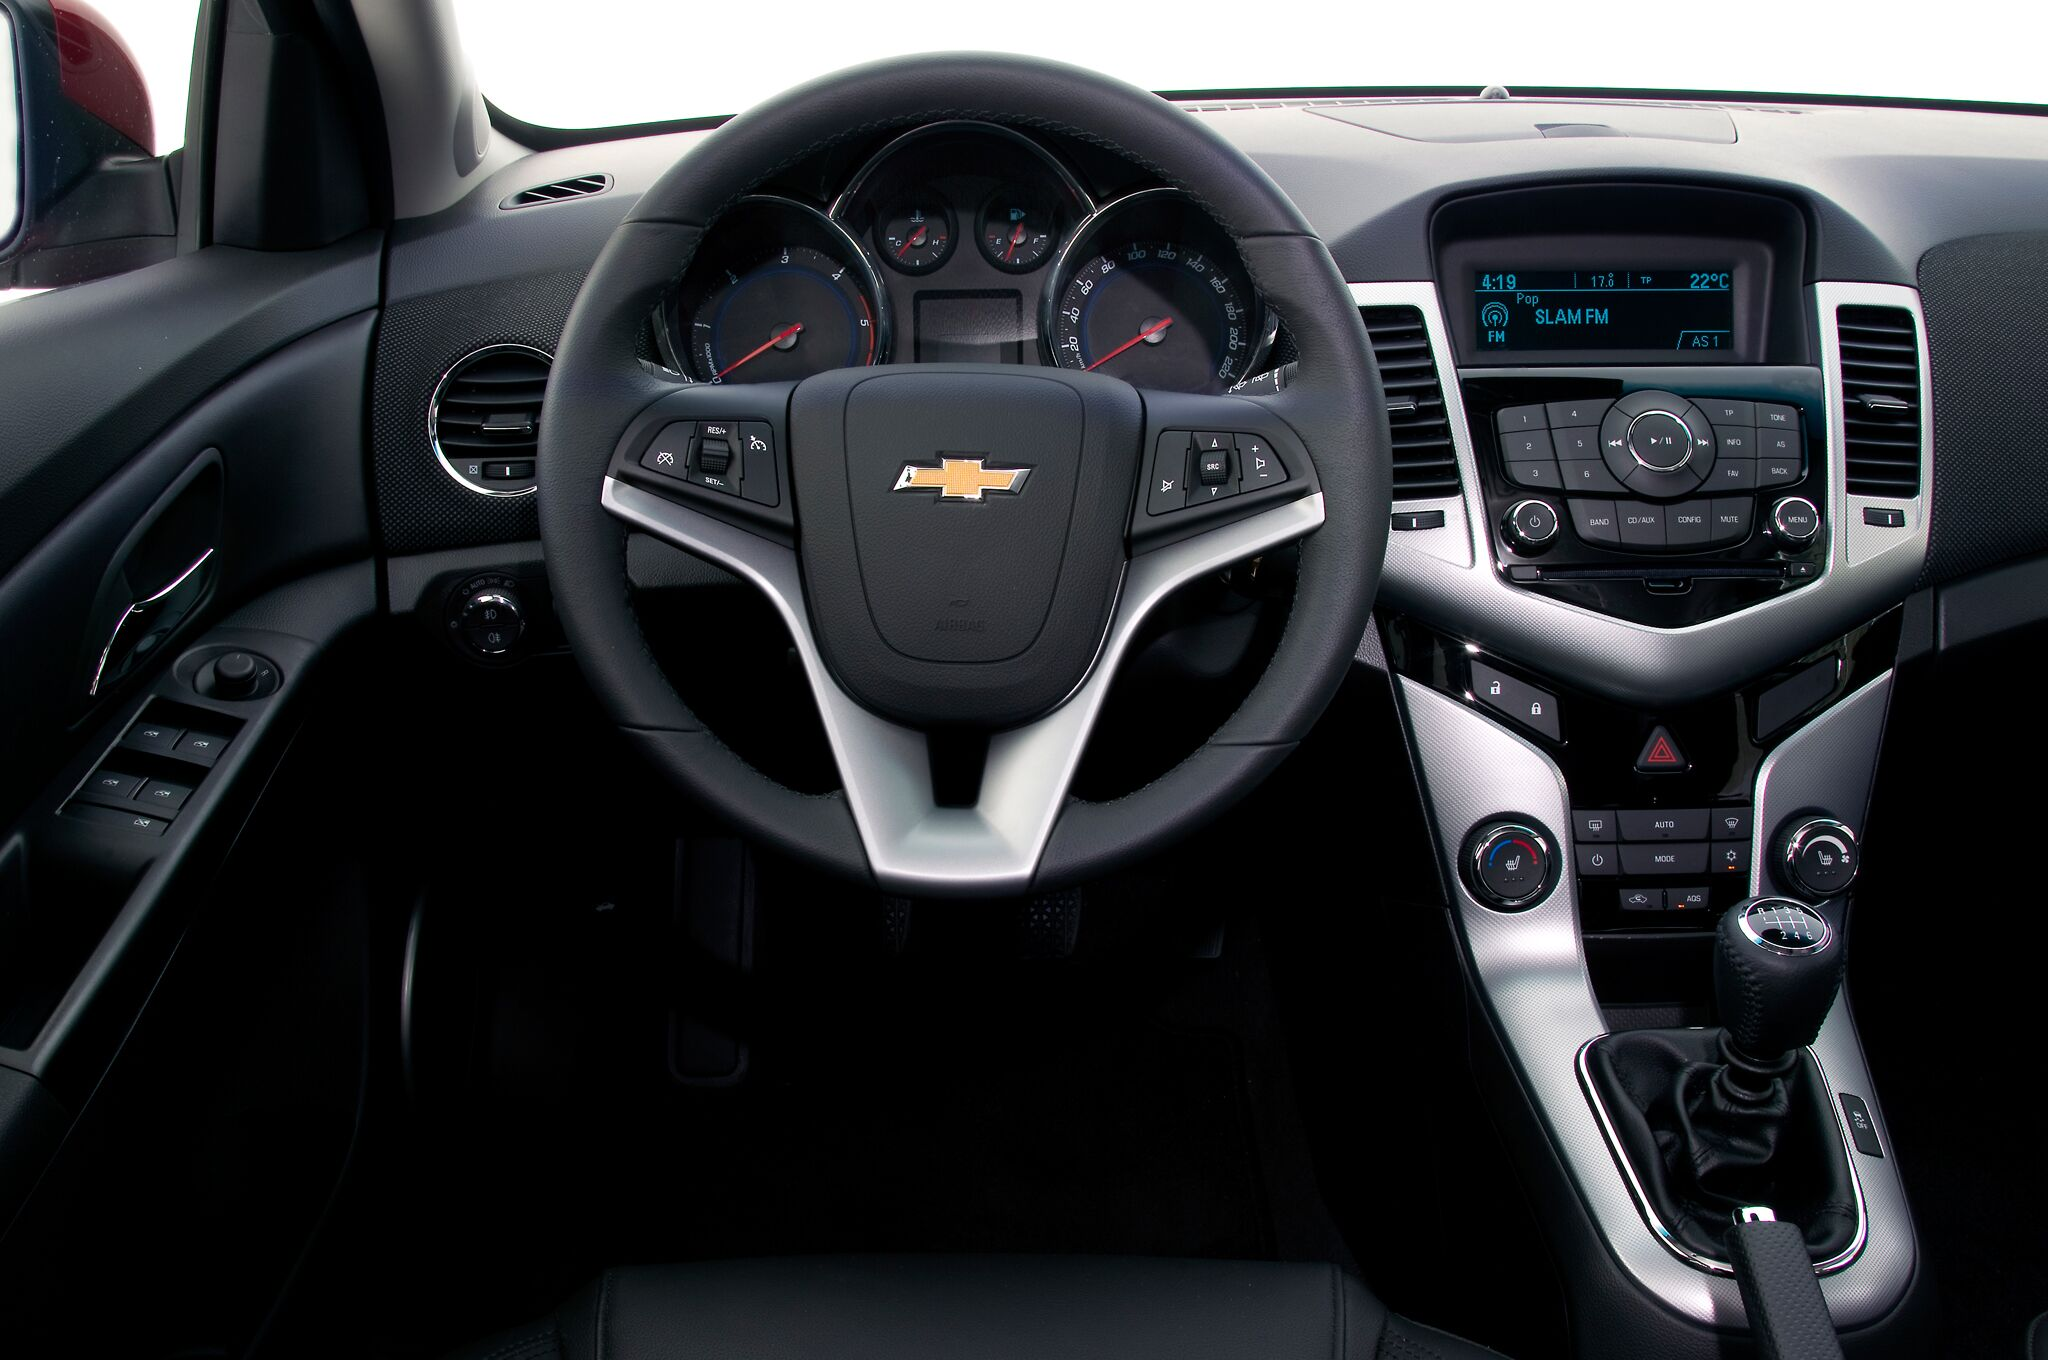 Charming 2016 Chevrolet Cruze Interior Photo